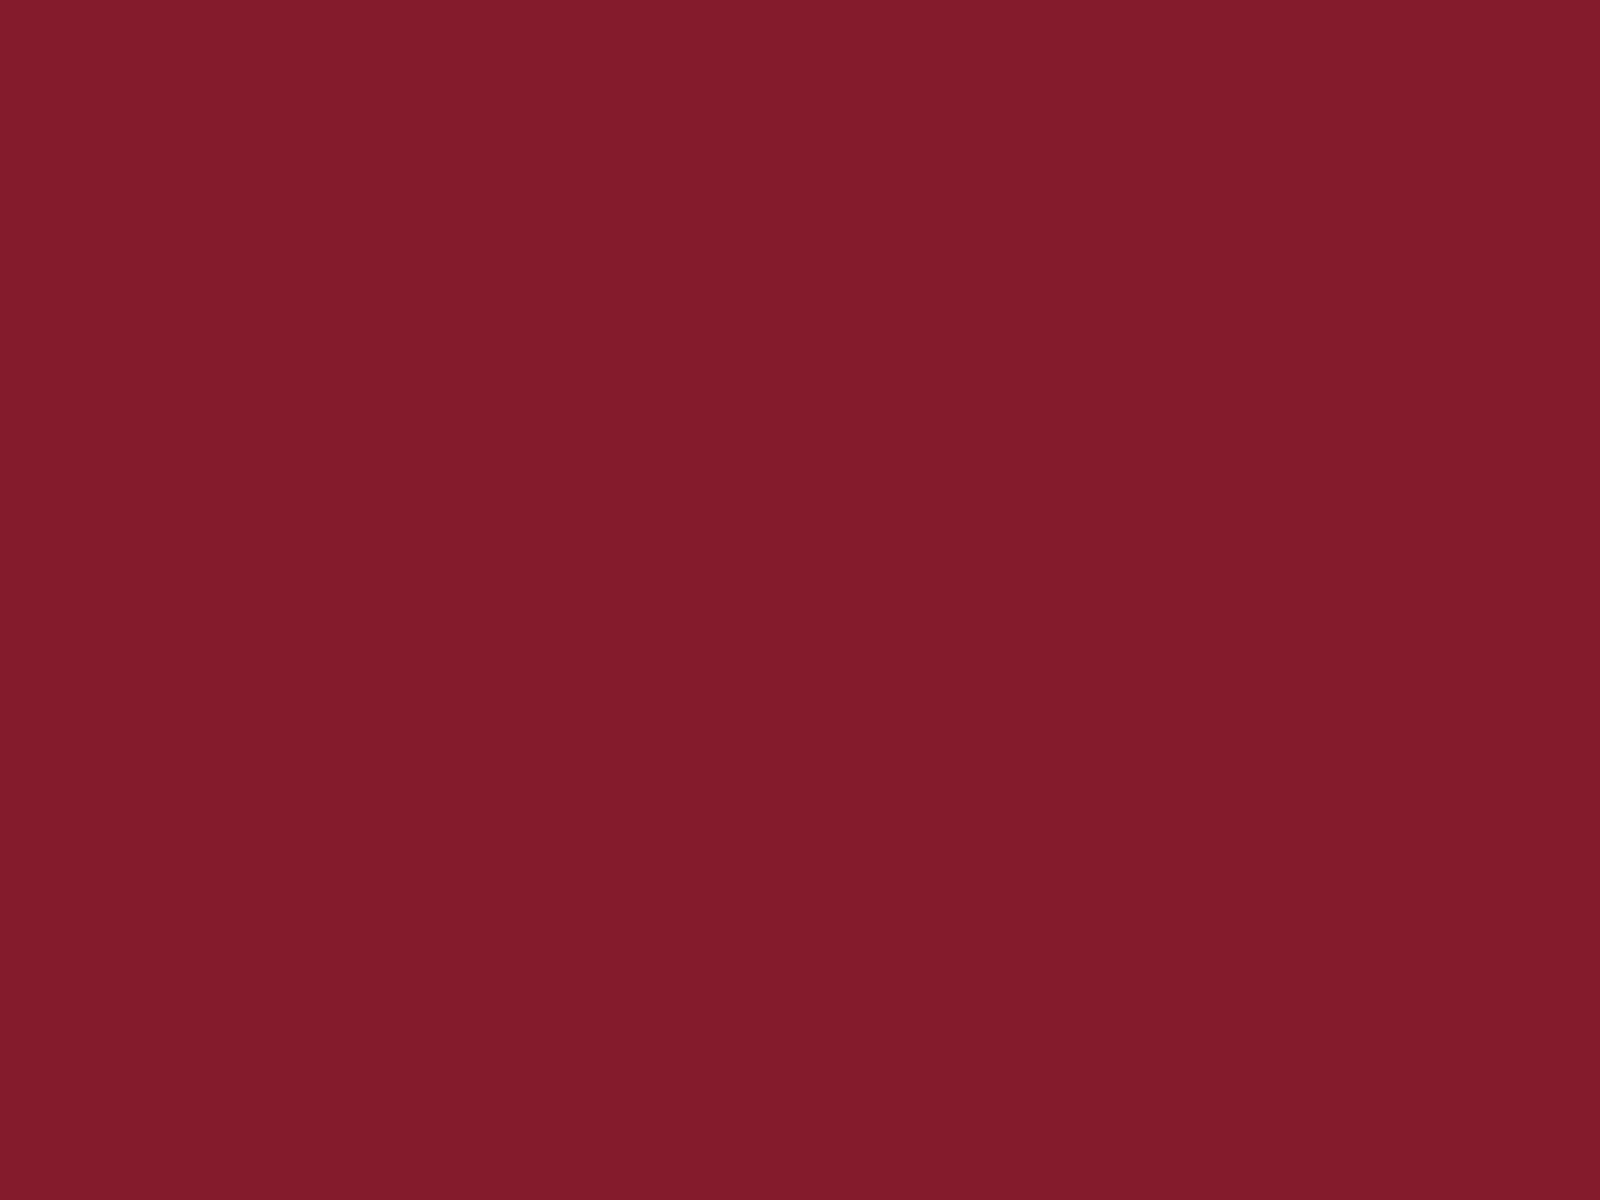 1600x1200 Antique Ruby Solid Color Background